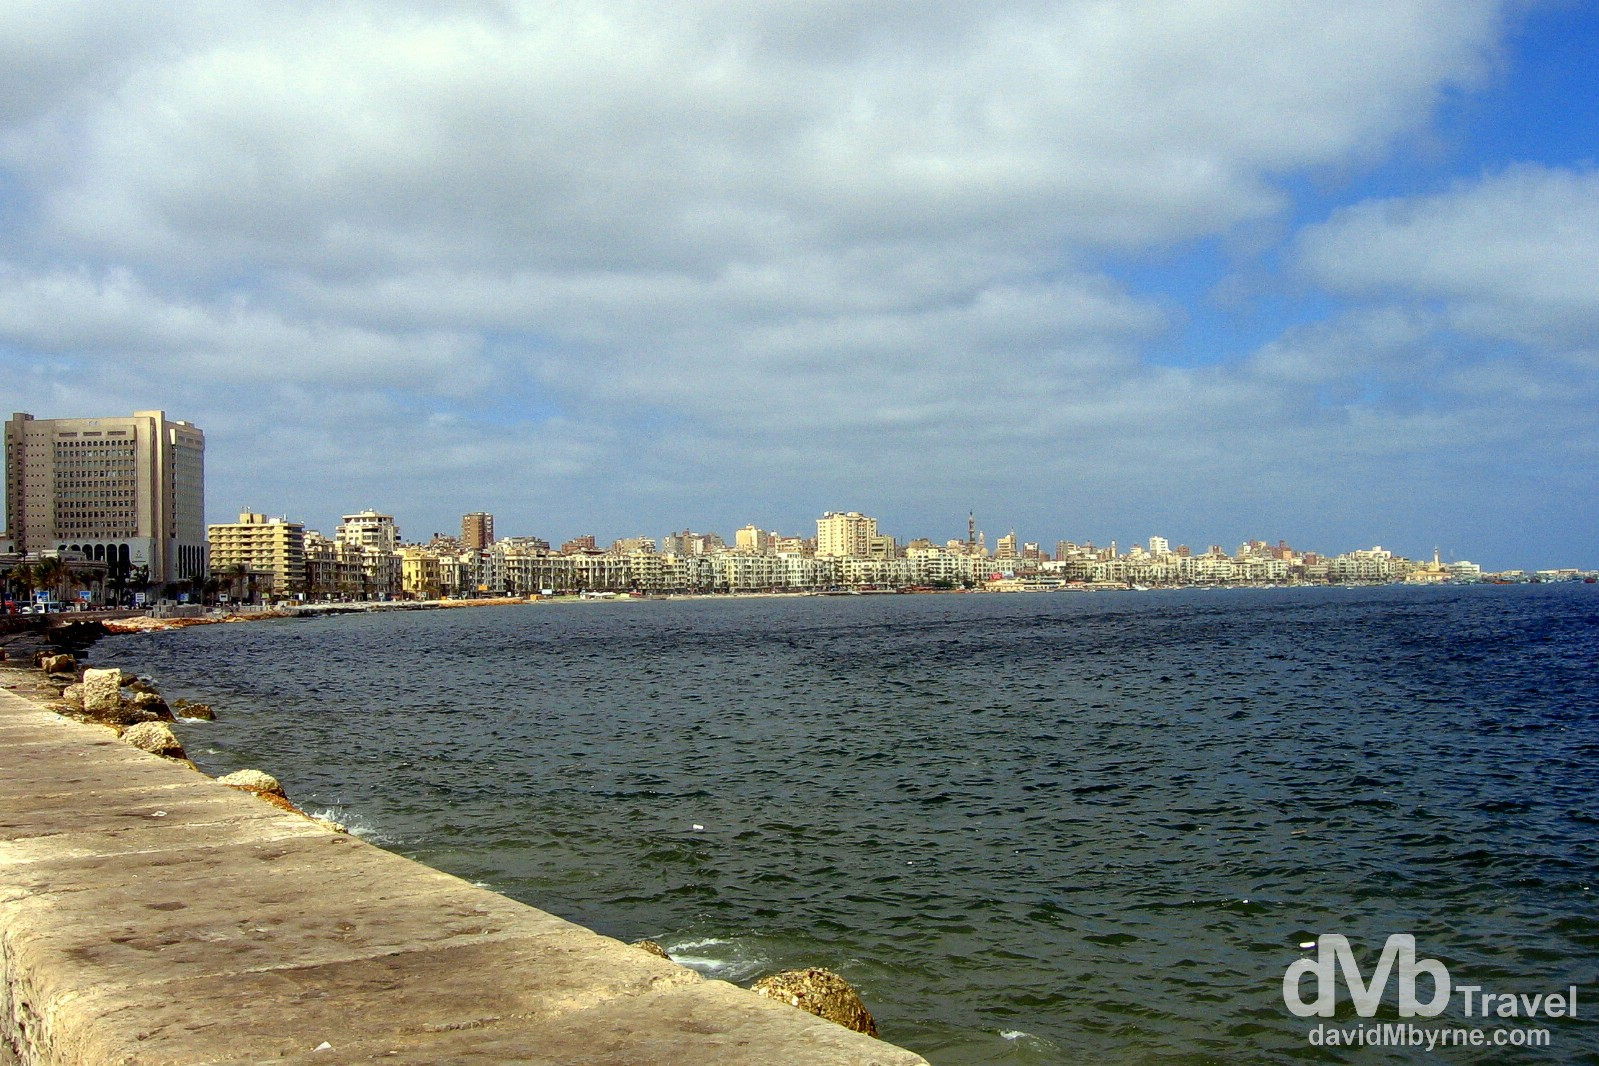 Alexandria, Egypt. April 16, 2008.